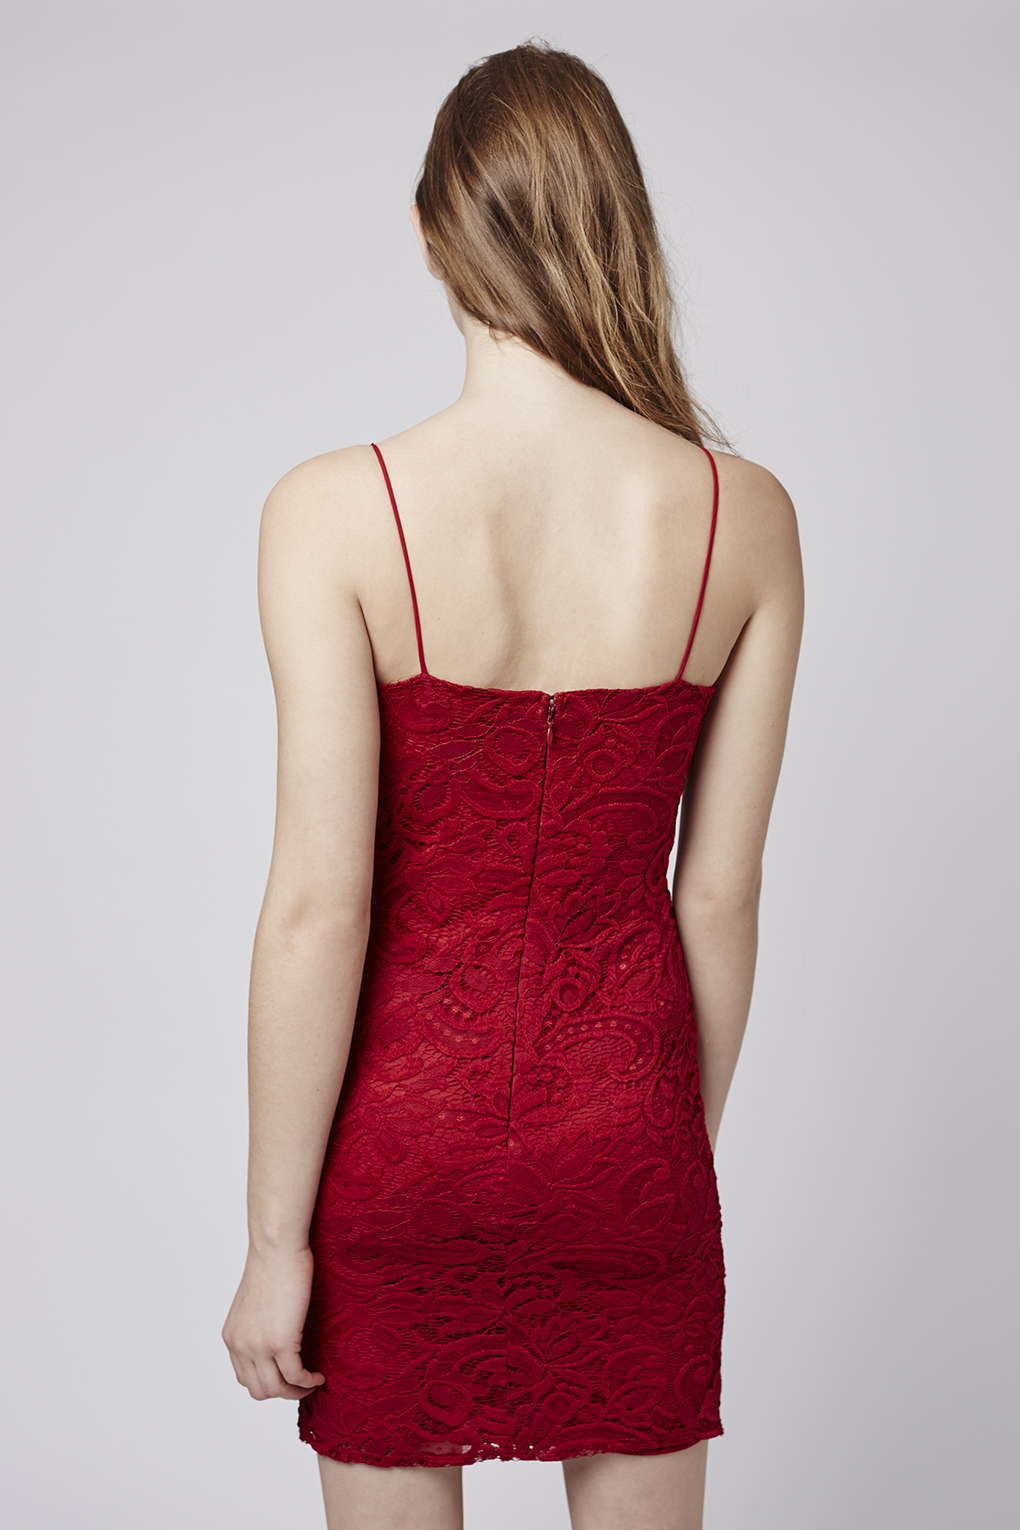 Red dress bodycon floral dress